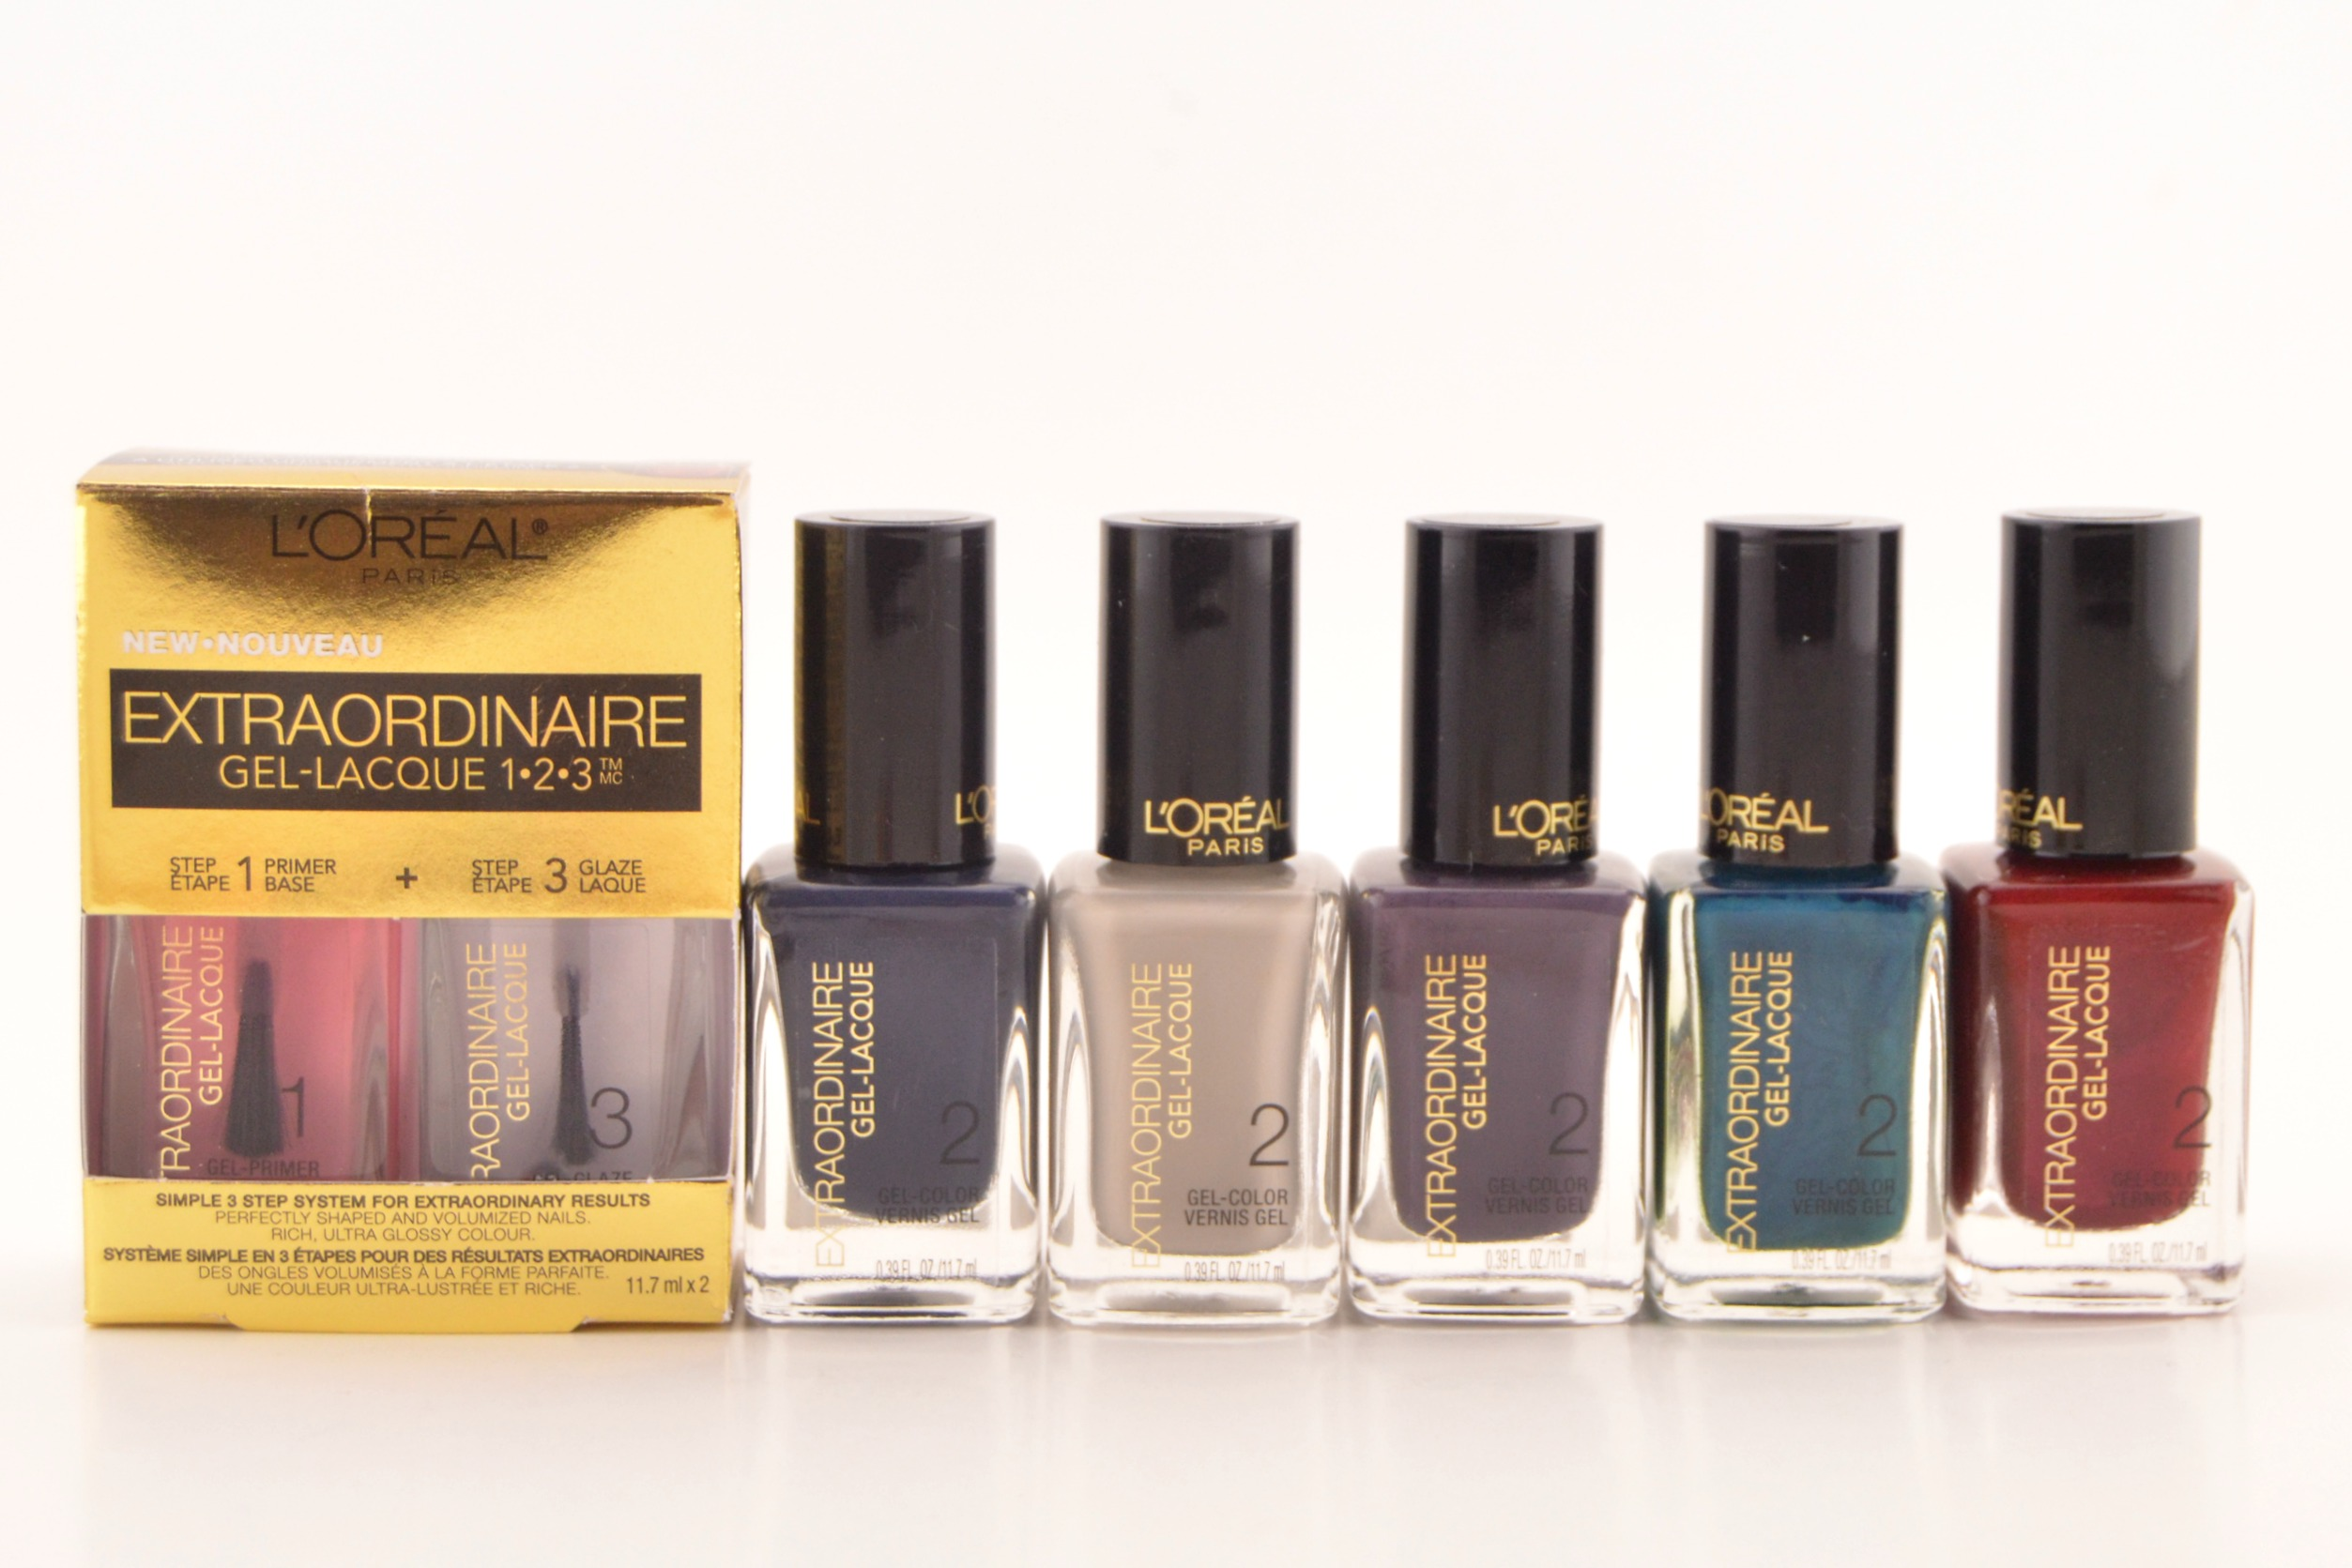 L\'Oreal Extraordinaire Gel Lacque 1-2-3 System